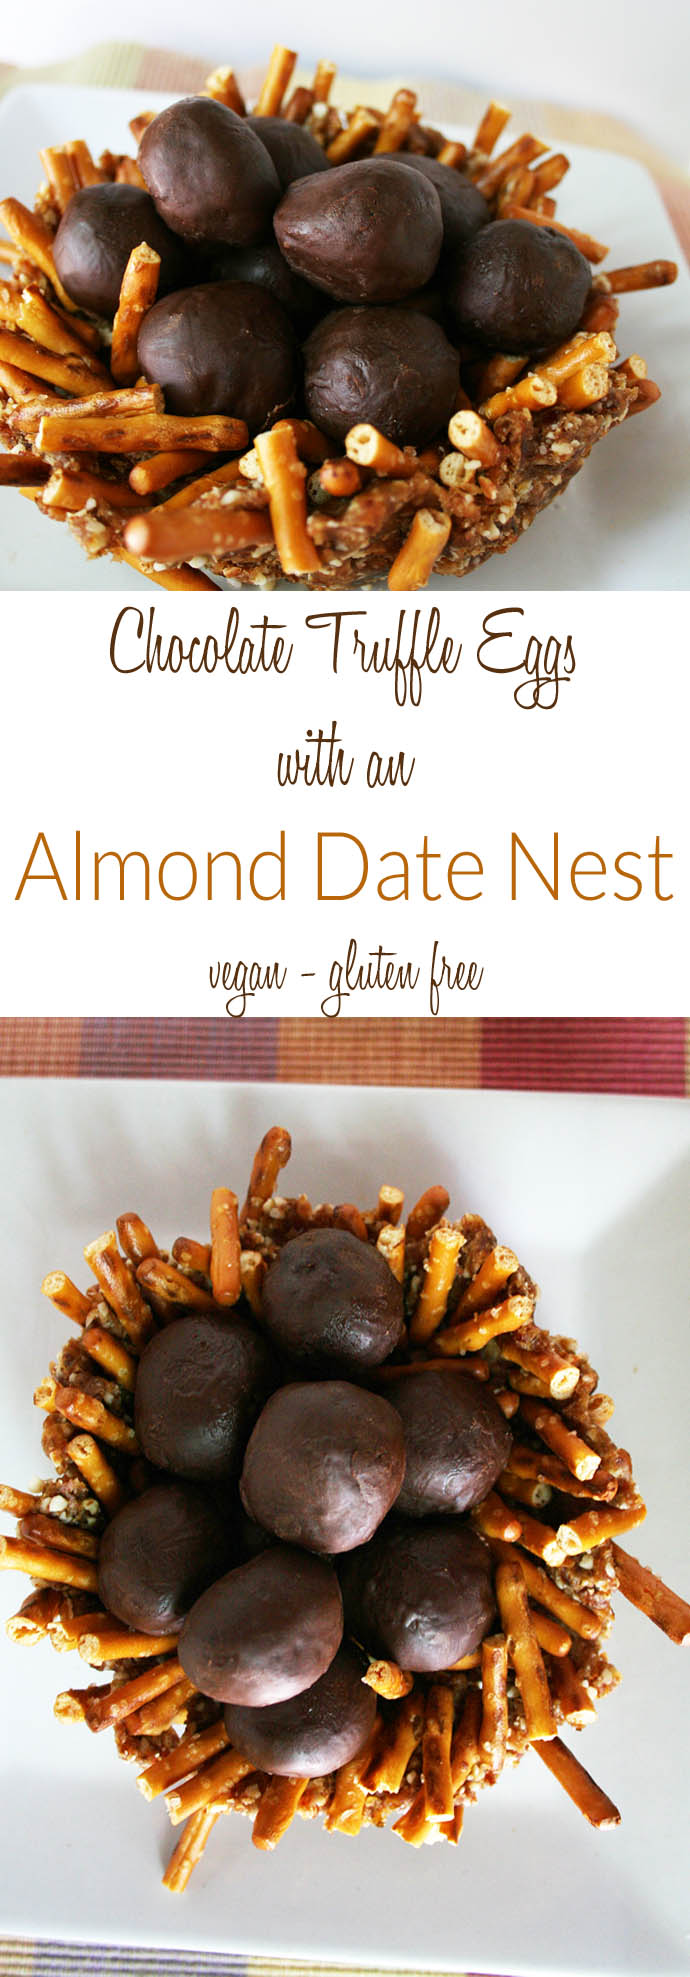 Chocolate Truffle Eggs with an Almond Date Nest for Easter (vegan, gluten free) - This sweet dessert is sure to impress. Made with an almond date pretzel nest.